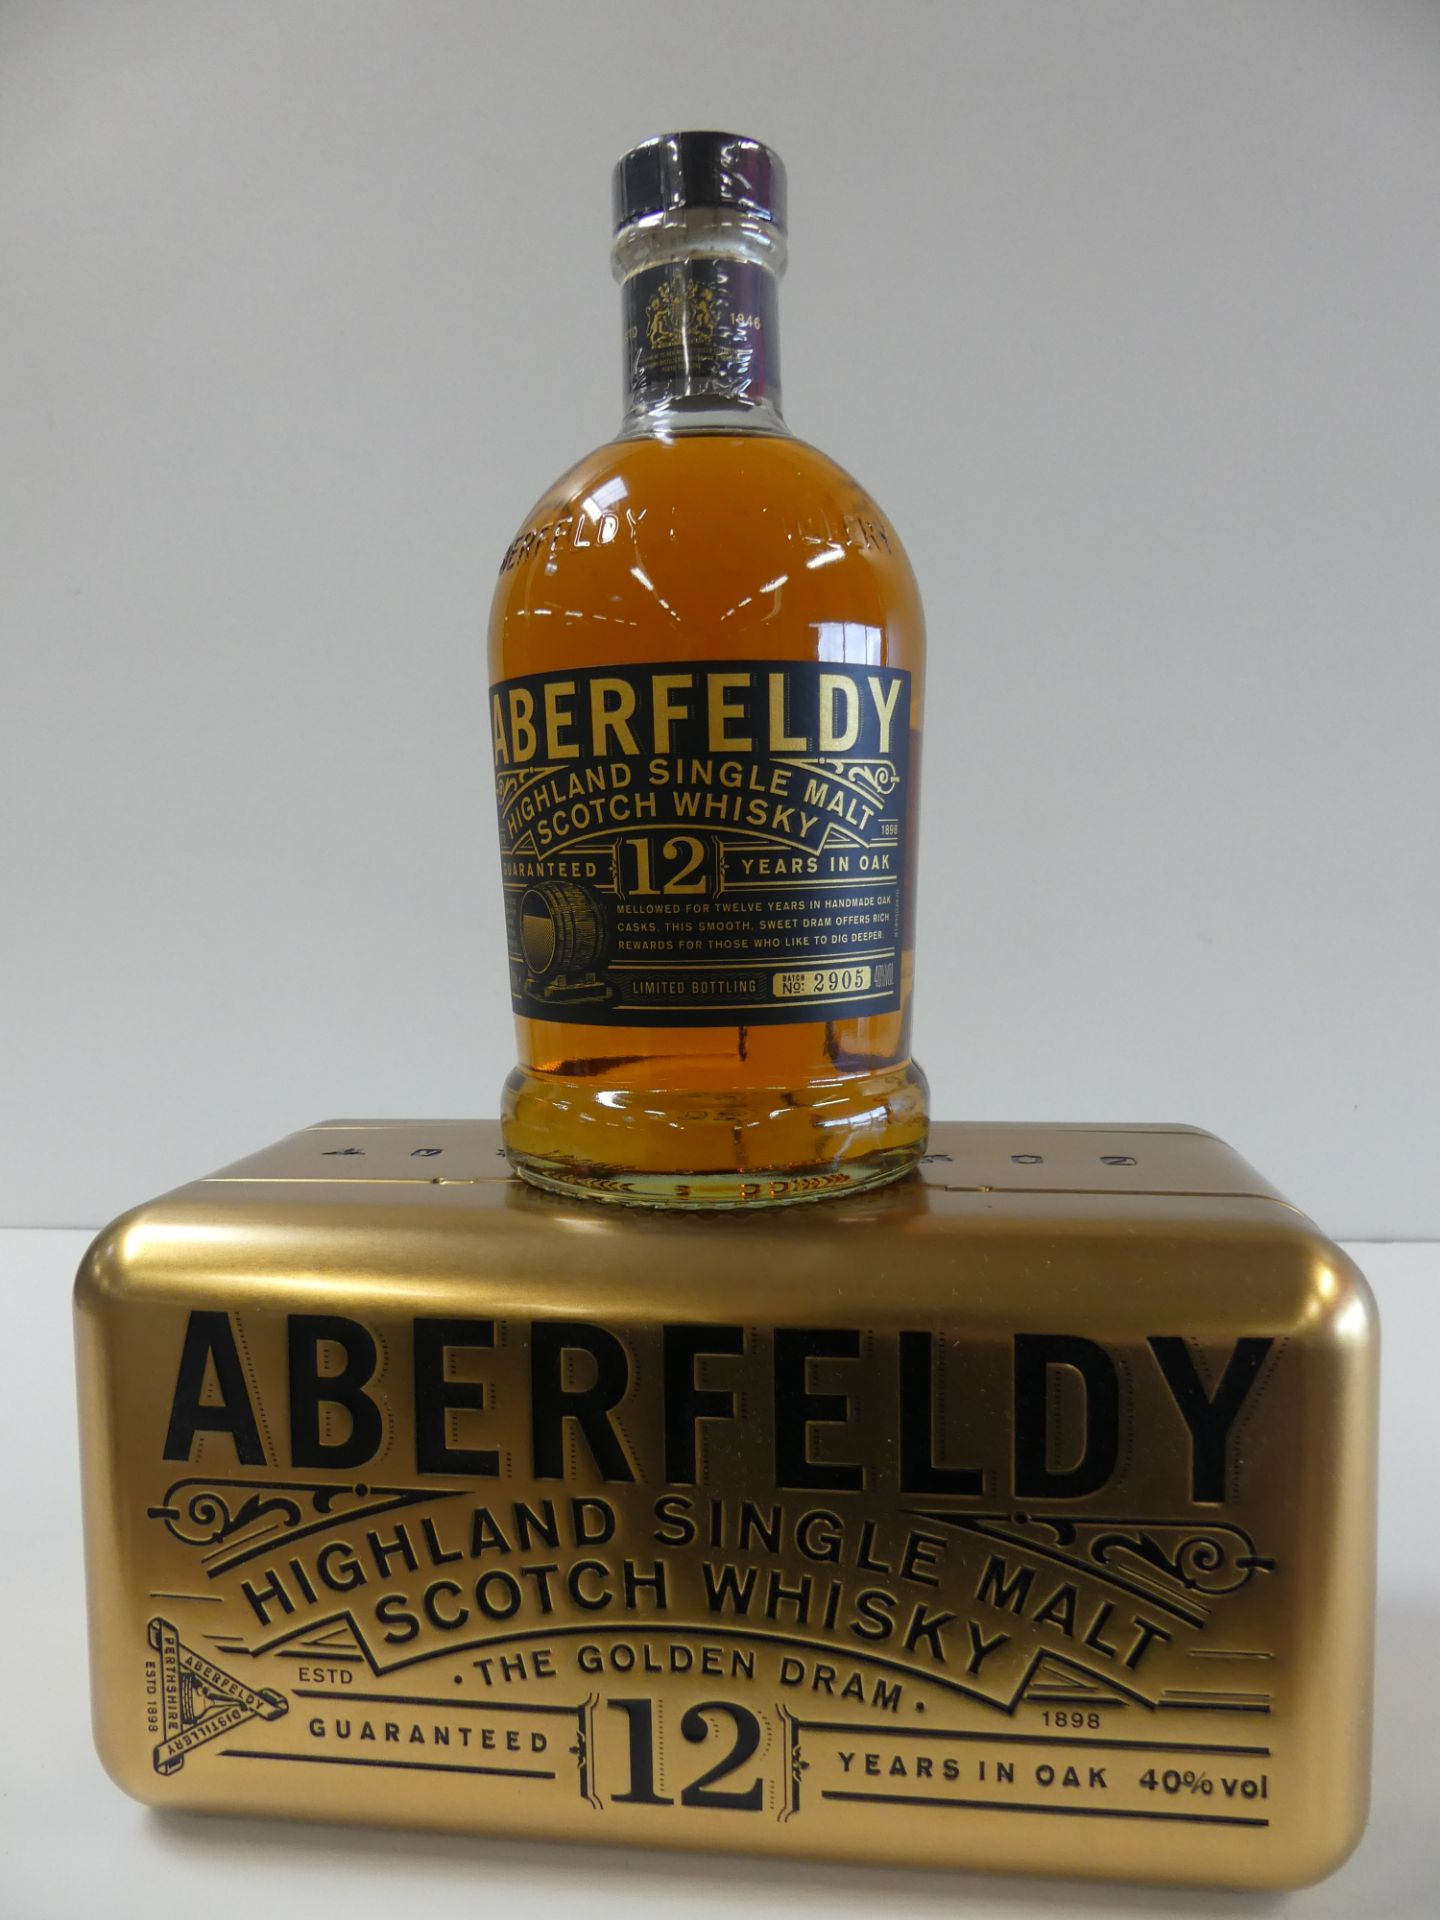 Los 38 - 1 Superbe Coffret Highland Single Malt Scotch Whisky Aberfeldy Guaranted 12 years in [...]